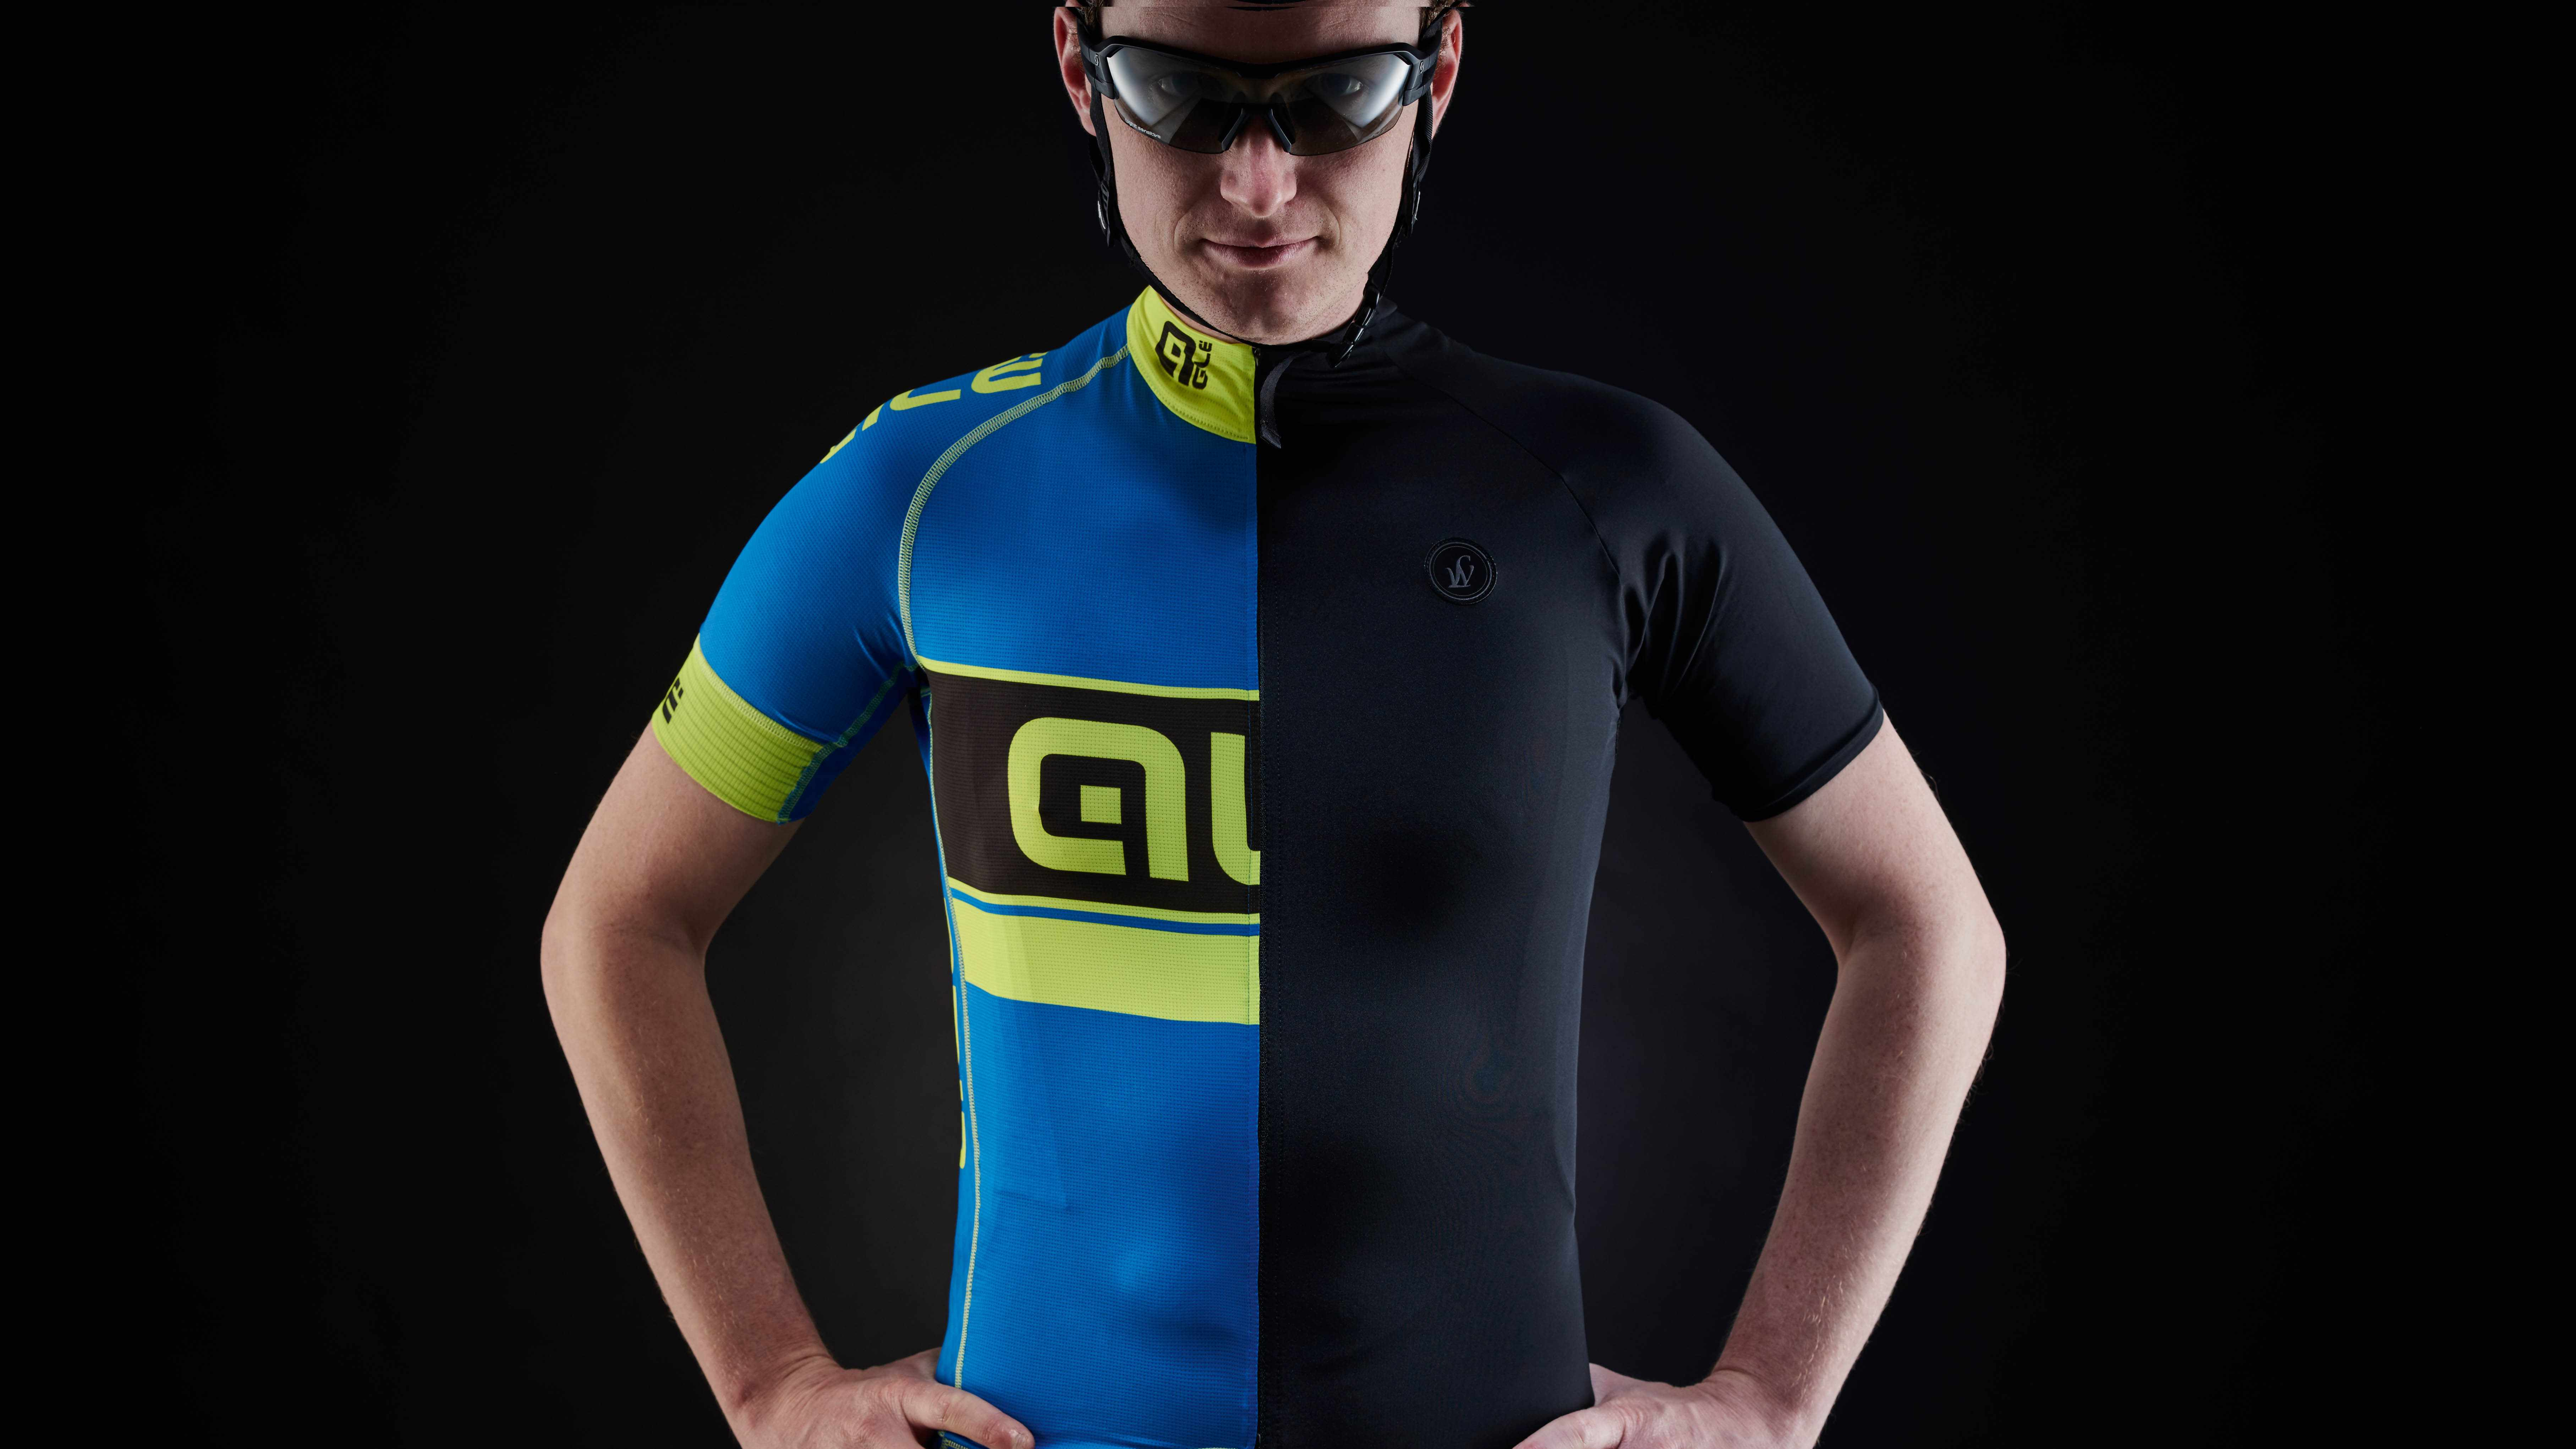 Black is a favourite colour for cyclists, but is it really more dangerous to wear?